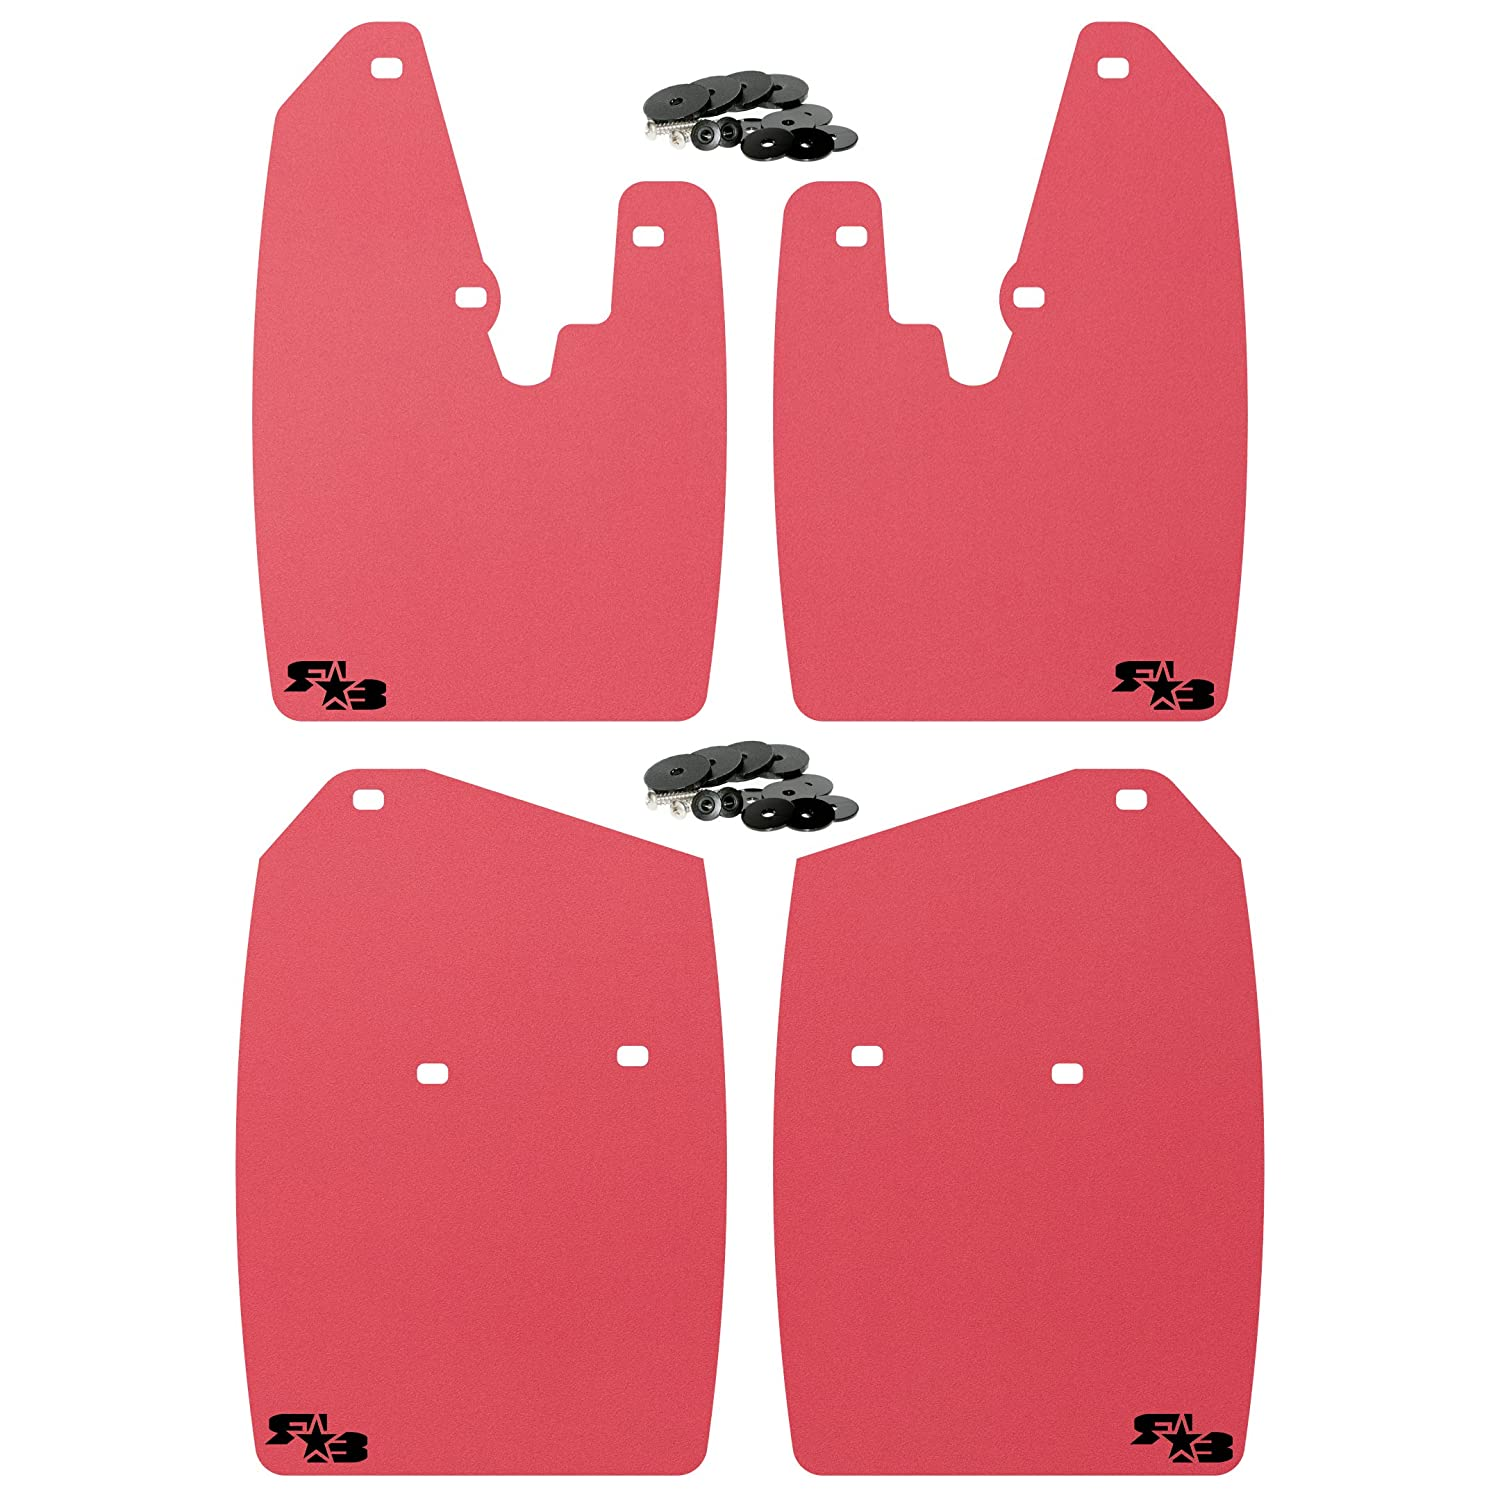 Fits 2010 V2 Large Dodge Mud Guards Come in 2 Sizes for Stock or Lifted//Oversize Tires. 1500 2500 3500 RokBlokz Mud Flaps for Dodge Ram , Black